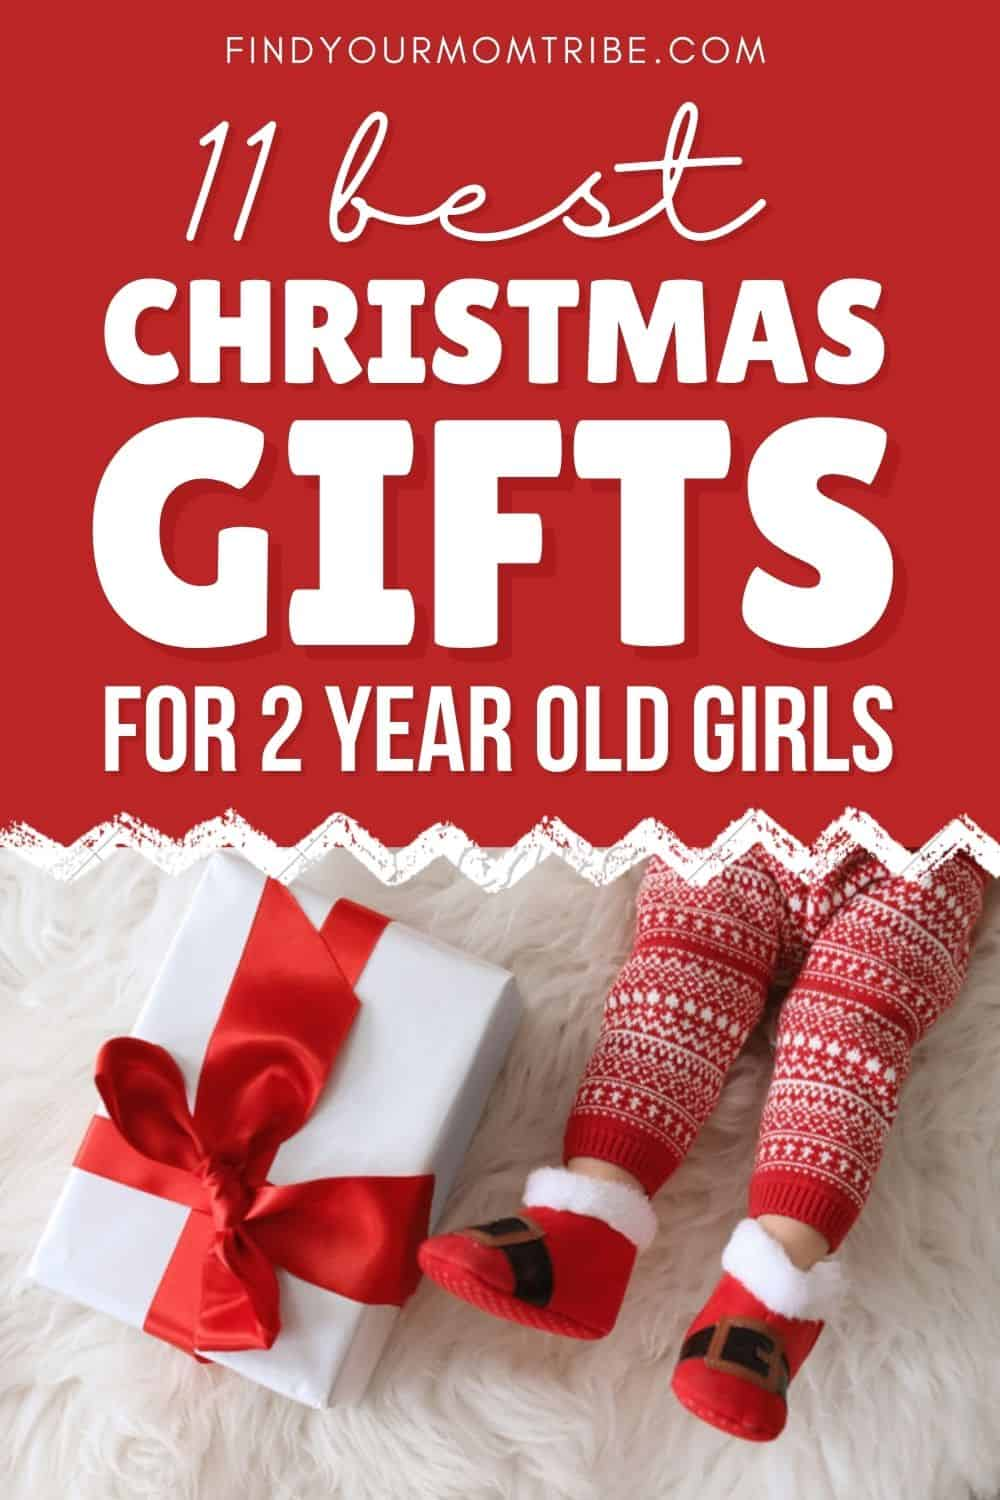 11 Best Christmas Gifts For 2 Year Old Girls In 2020